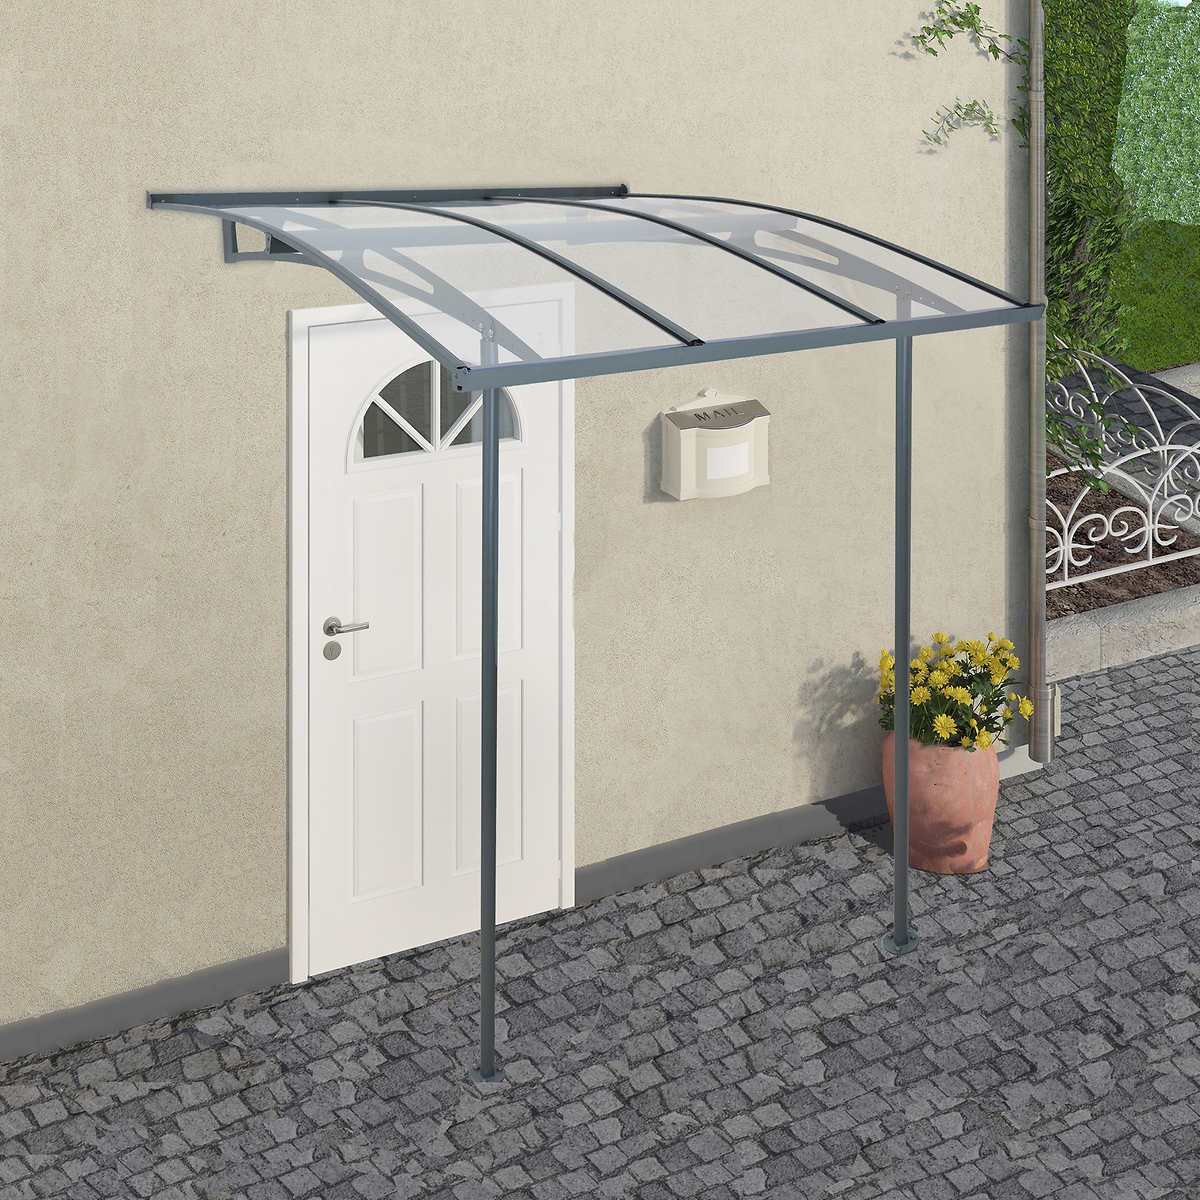 for doors aquila watch kit door cover youtube canopy self assembly